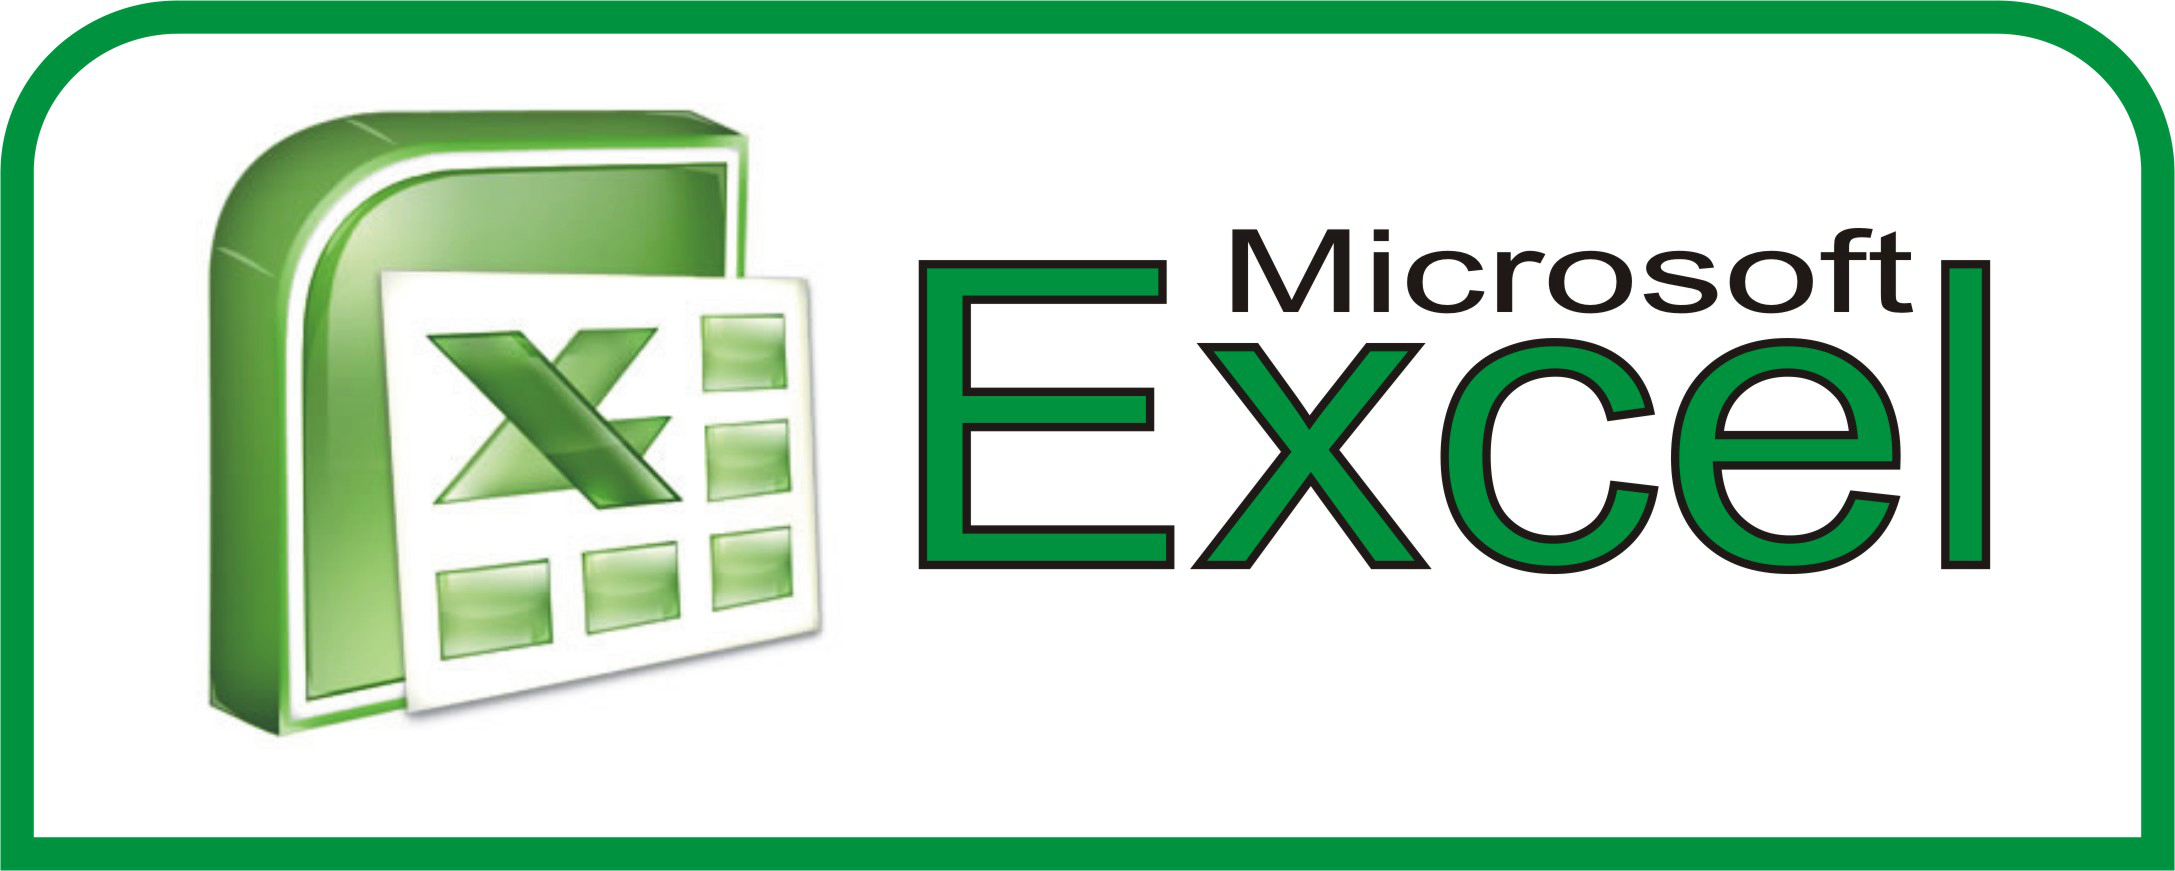 Ediblewildsus  Seductive  Excel Shortcuts You Probably Didnt Know About  Techdissected With Magnificent Insert Comment In Excel Besides New Line Excel Mac Furthermore Excel Merge Columns With Attractive Z Score Excel Also Basic Excel Functions In Addition How To Do E In Excel And Convert Pdf To Excel Free As Well As How To Change The X Axis In Excel Additionally Excel Skills From Techdissectedcom With Ediblewildsus  Magnificent  Excel Shortcuts You Probably Didnt Know About  Techdissected With Attractive Insert Comment In Excel Besides New Line Excel Mac Furthermore Excel Merge Columns And Seductive Z Score Excel Also Basic Excel Functions In Addition How To Do E In Excel From Techdissectedcom